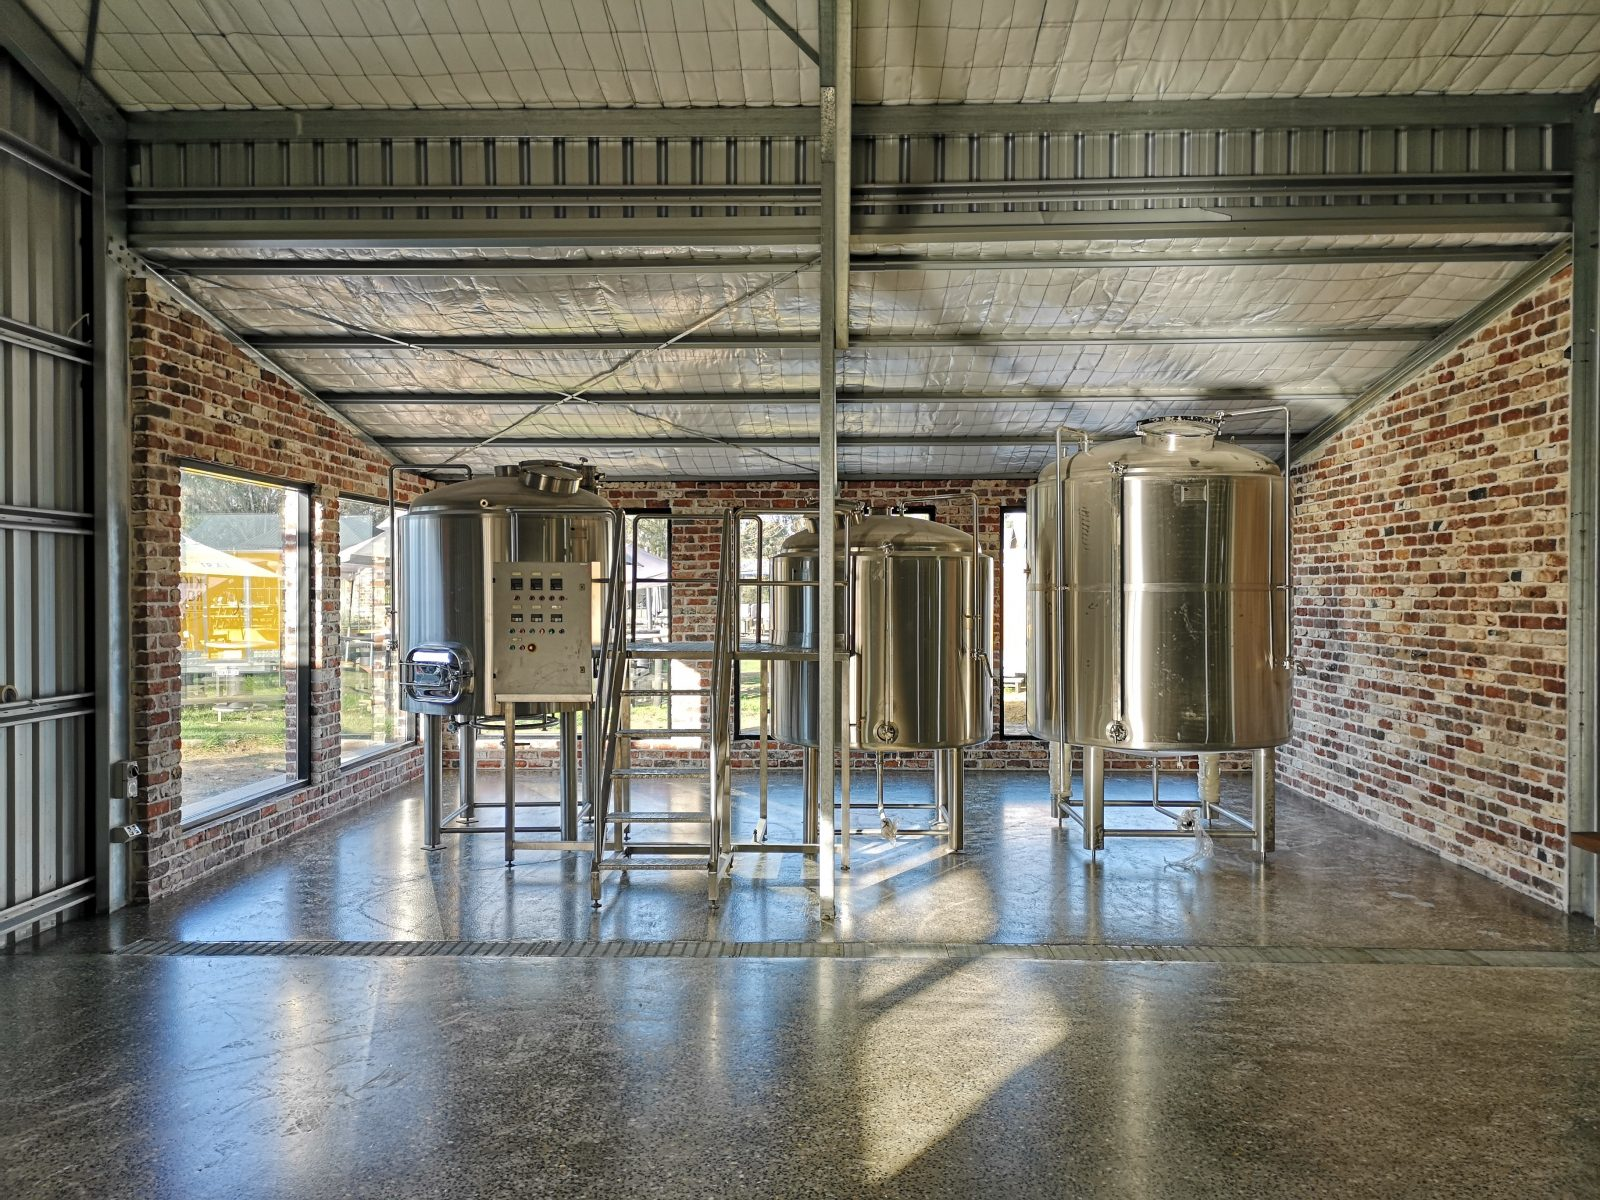 King Road Brewing Co, Oldbury, Western Australia